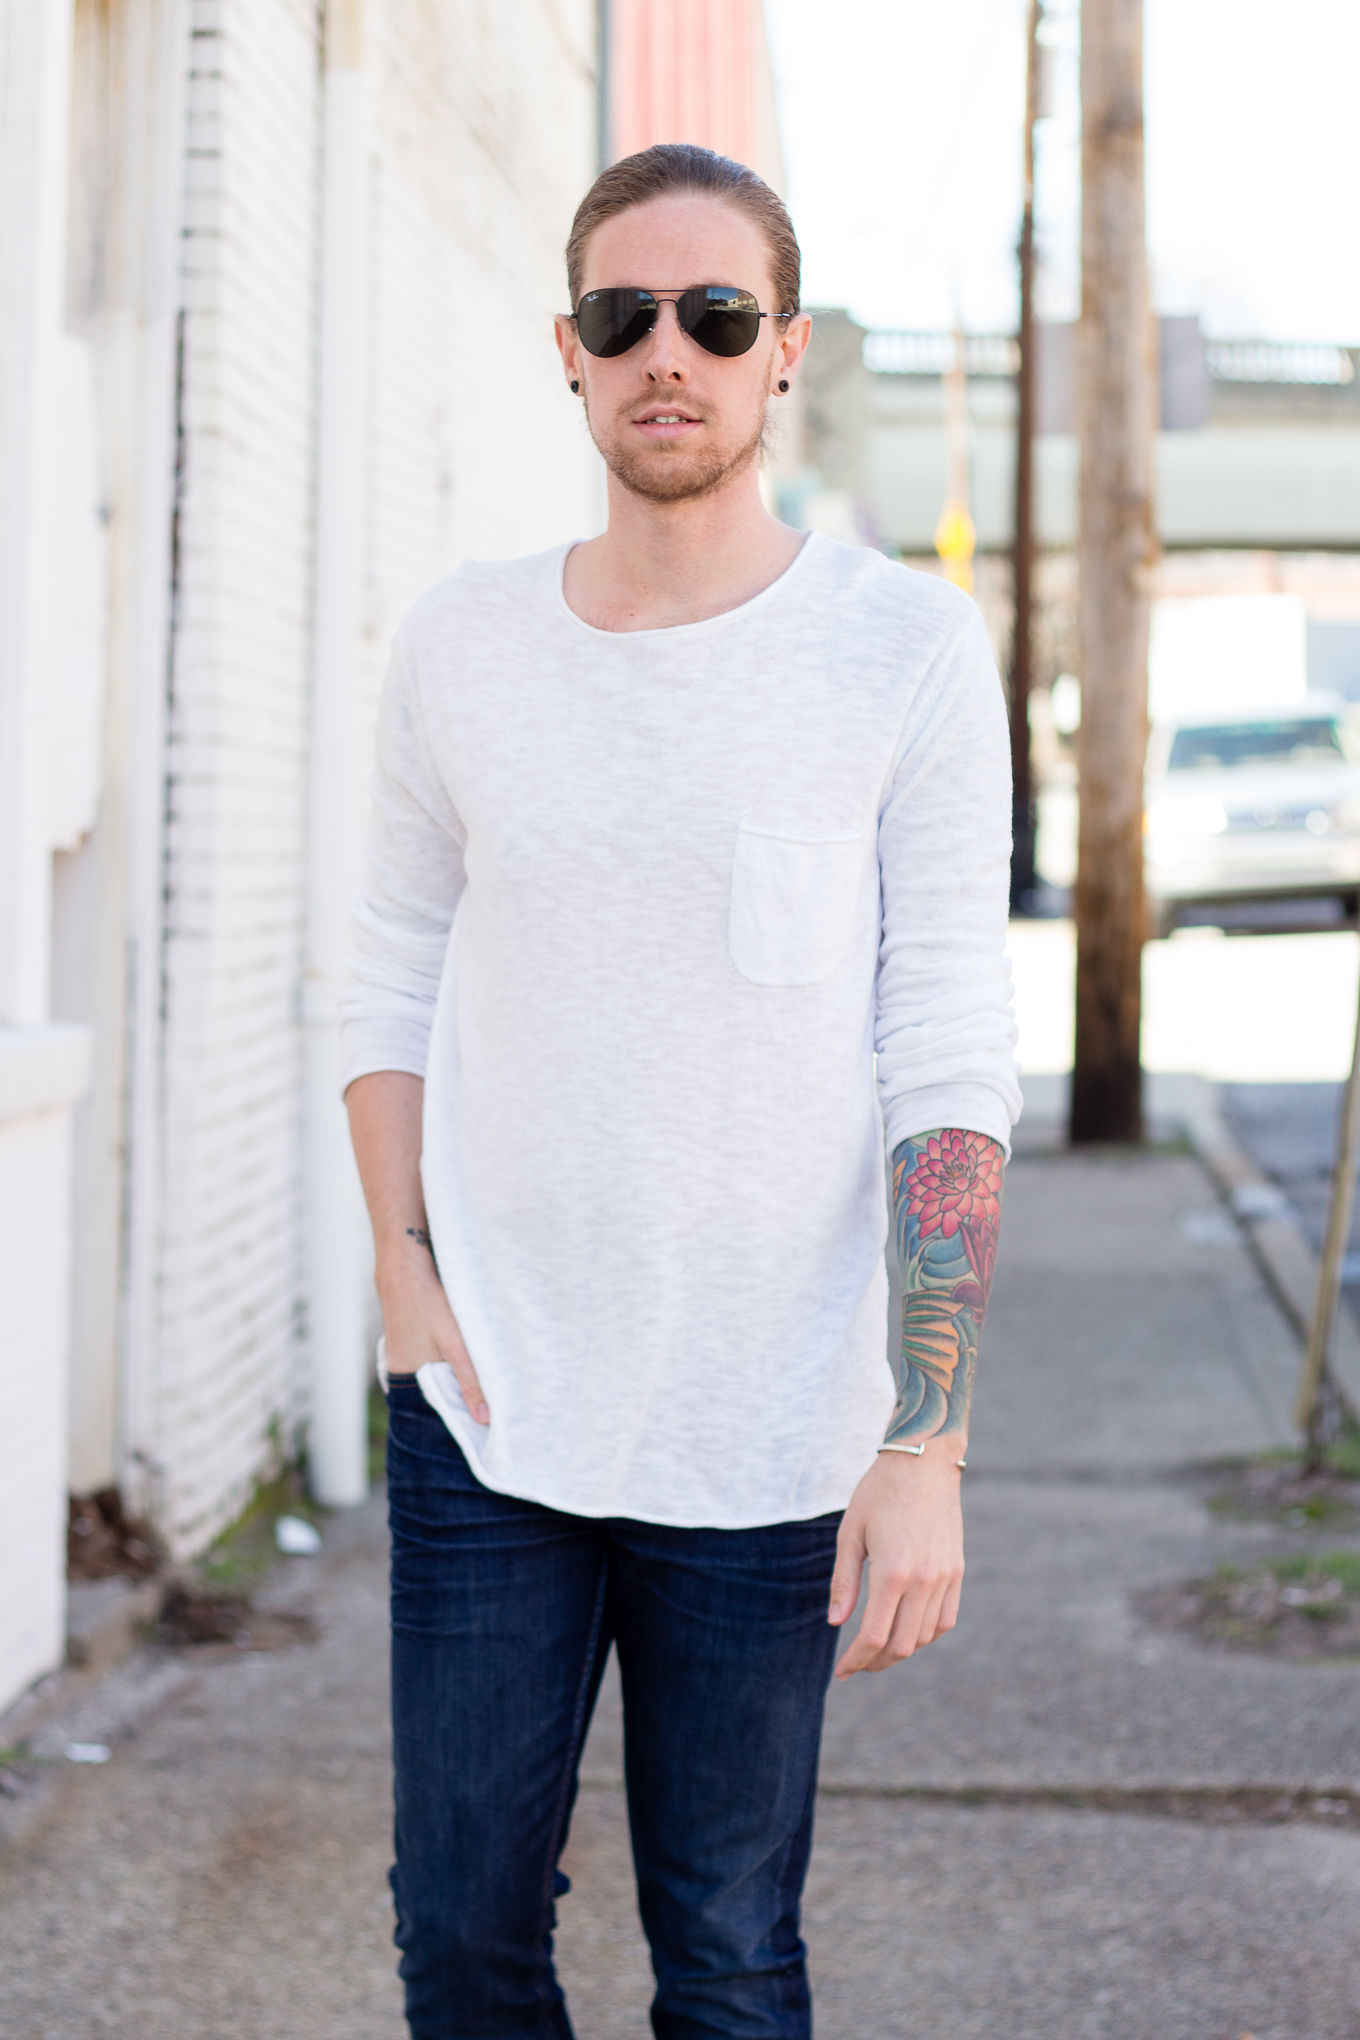 H&M Shirt + DSTLD Jeans on The Kentucky Gent